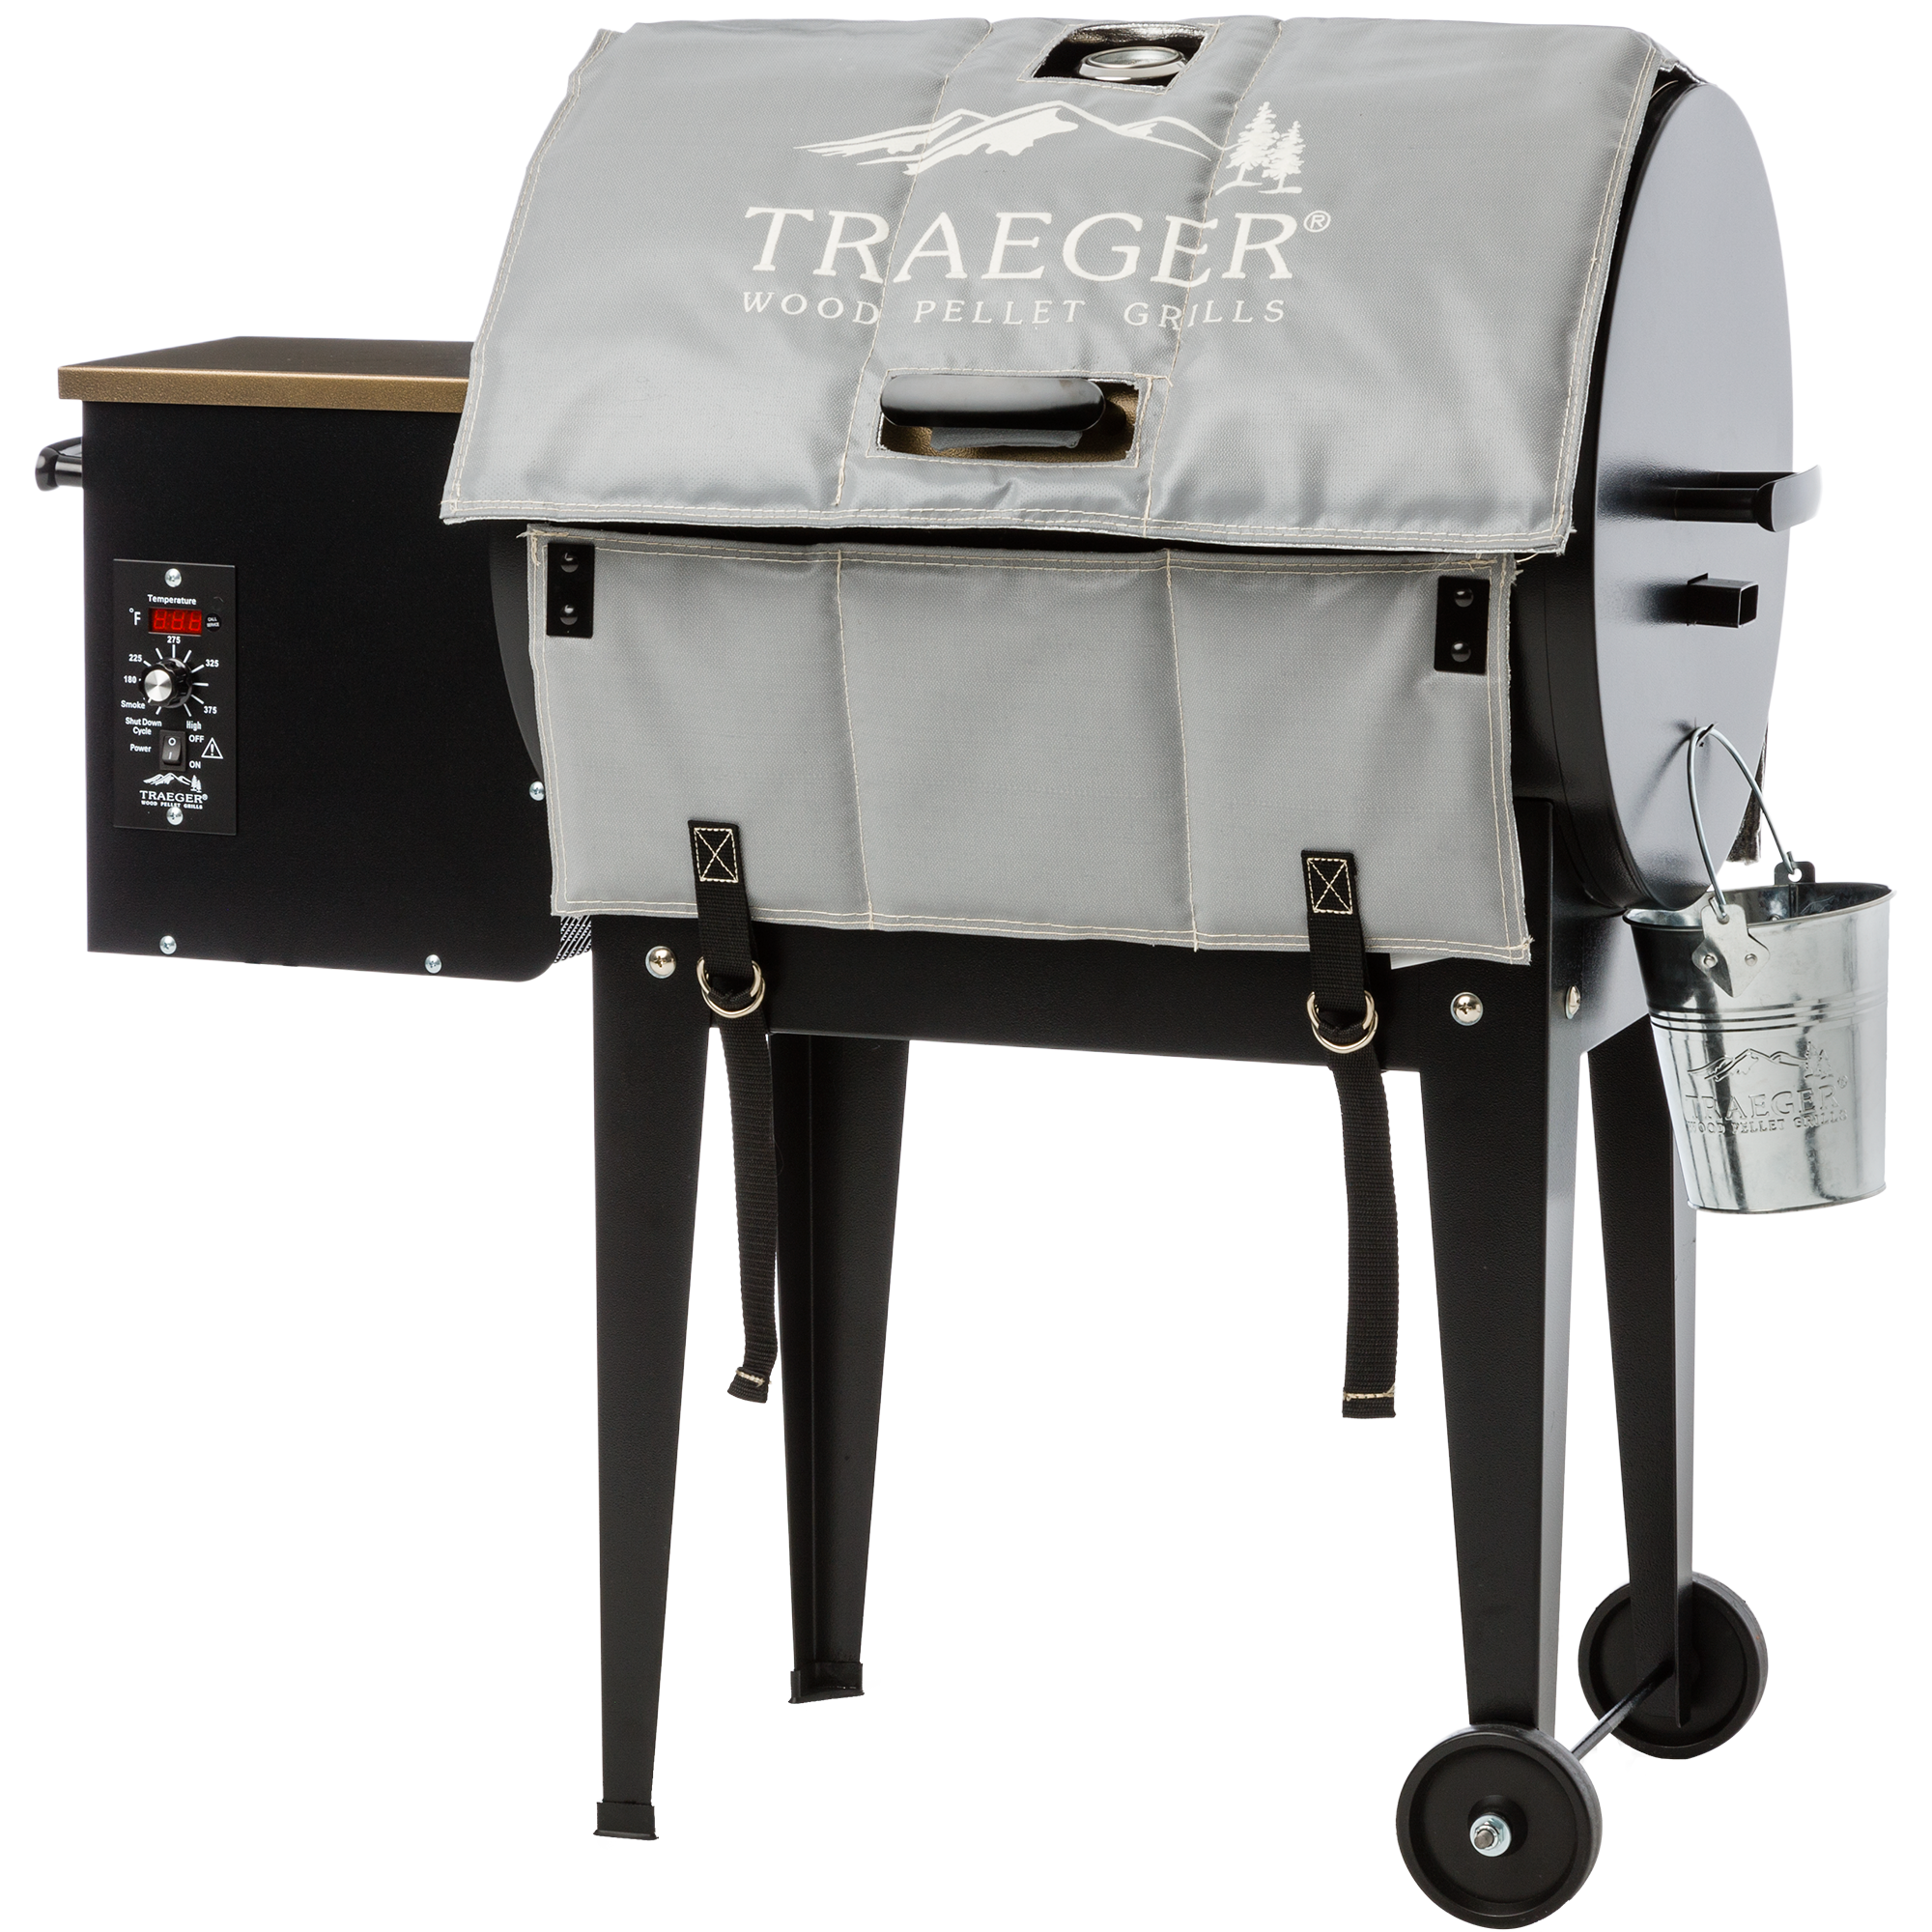 images - Traeger Grill Reviews